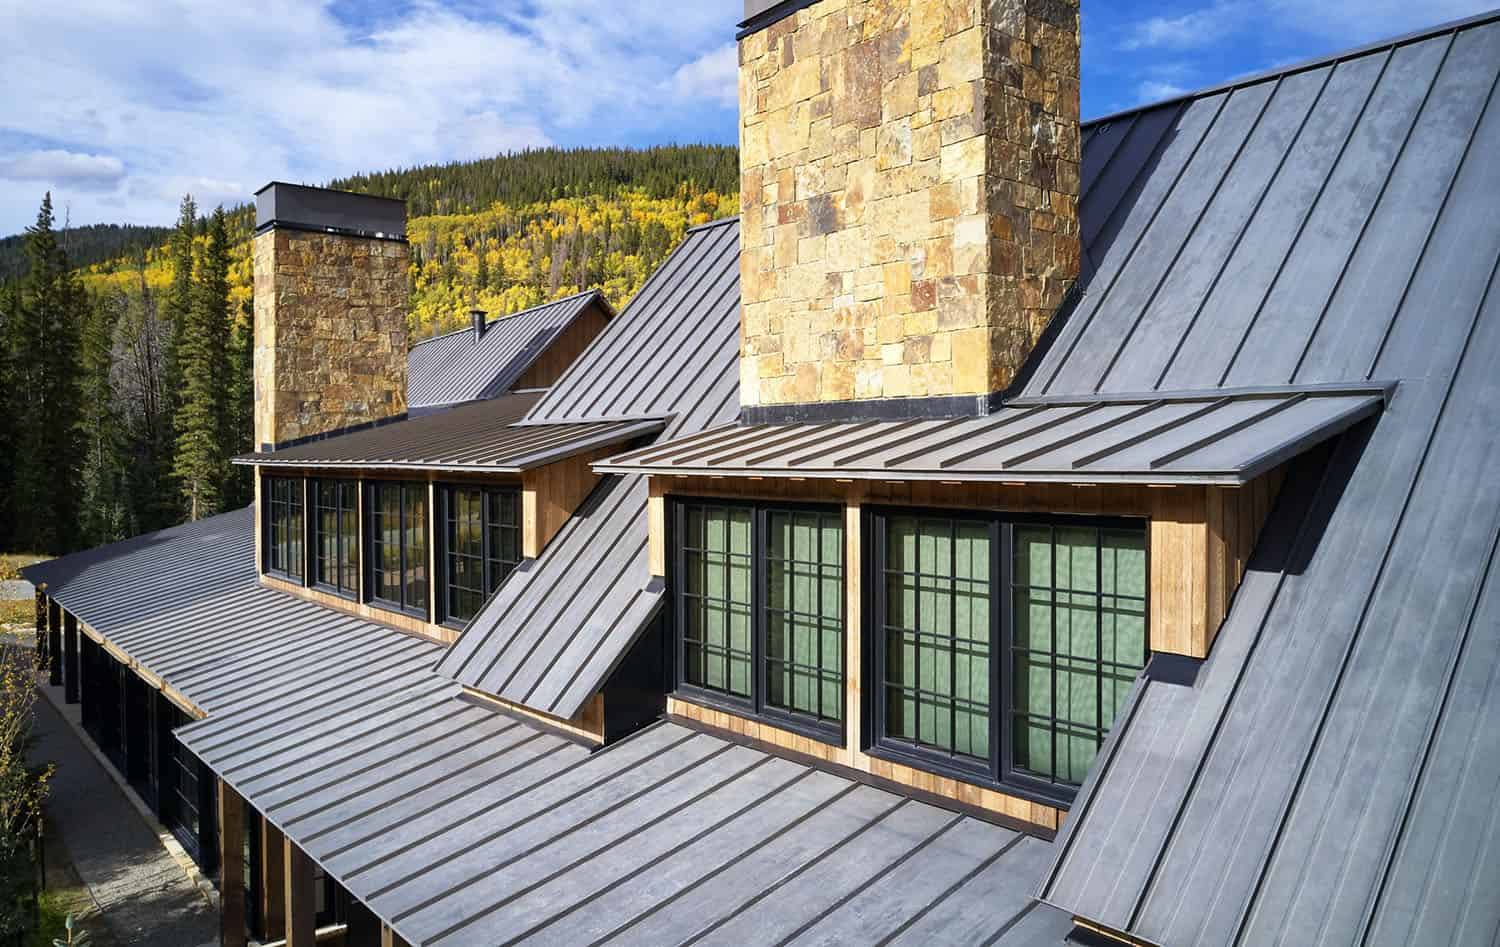 rustic-barn-style-exterior-roof-detail